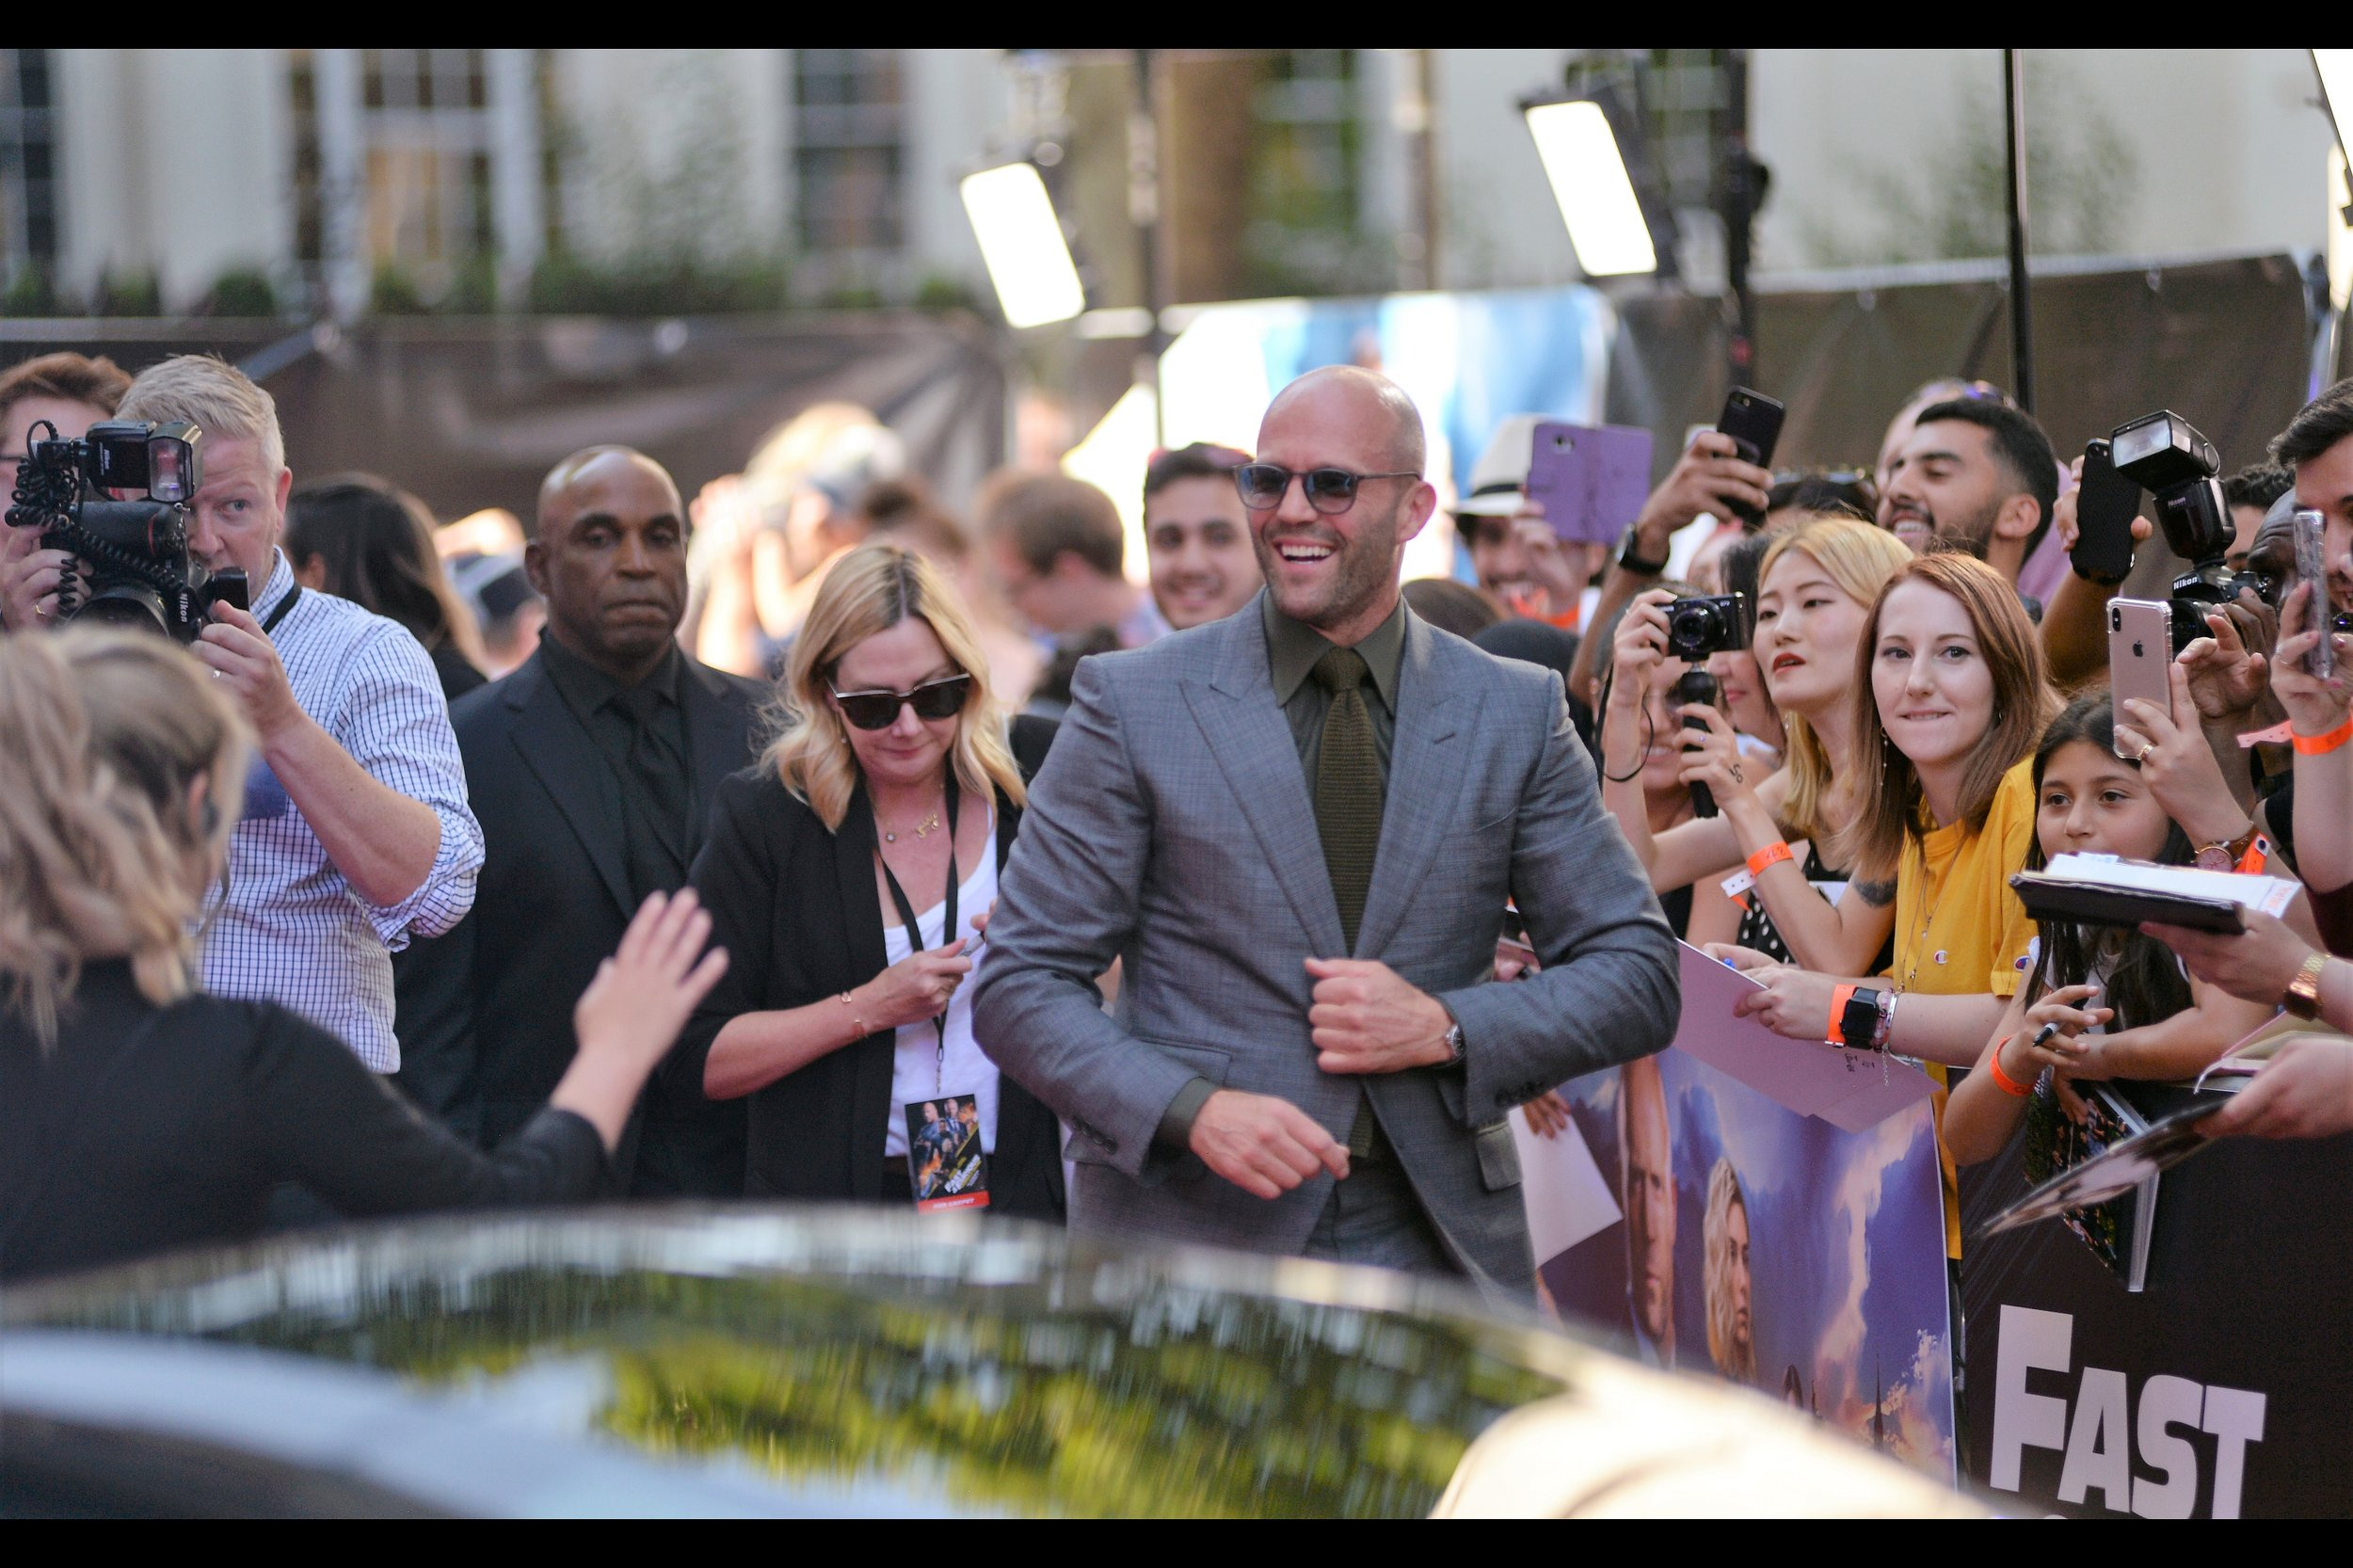 It's Jason Statham! Not only does he bear a striking similarity to me, and vice versa (except for his supermodel girlfriend, sure) but he's now parlayed an uncredited role at the tail of the 6th film (as a villain) into roles in the 7th and 8th films… and he's now a hero in this side-project!